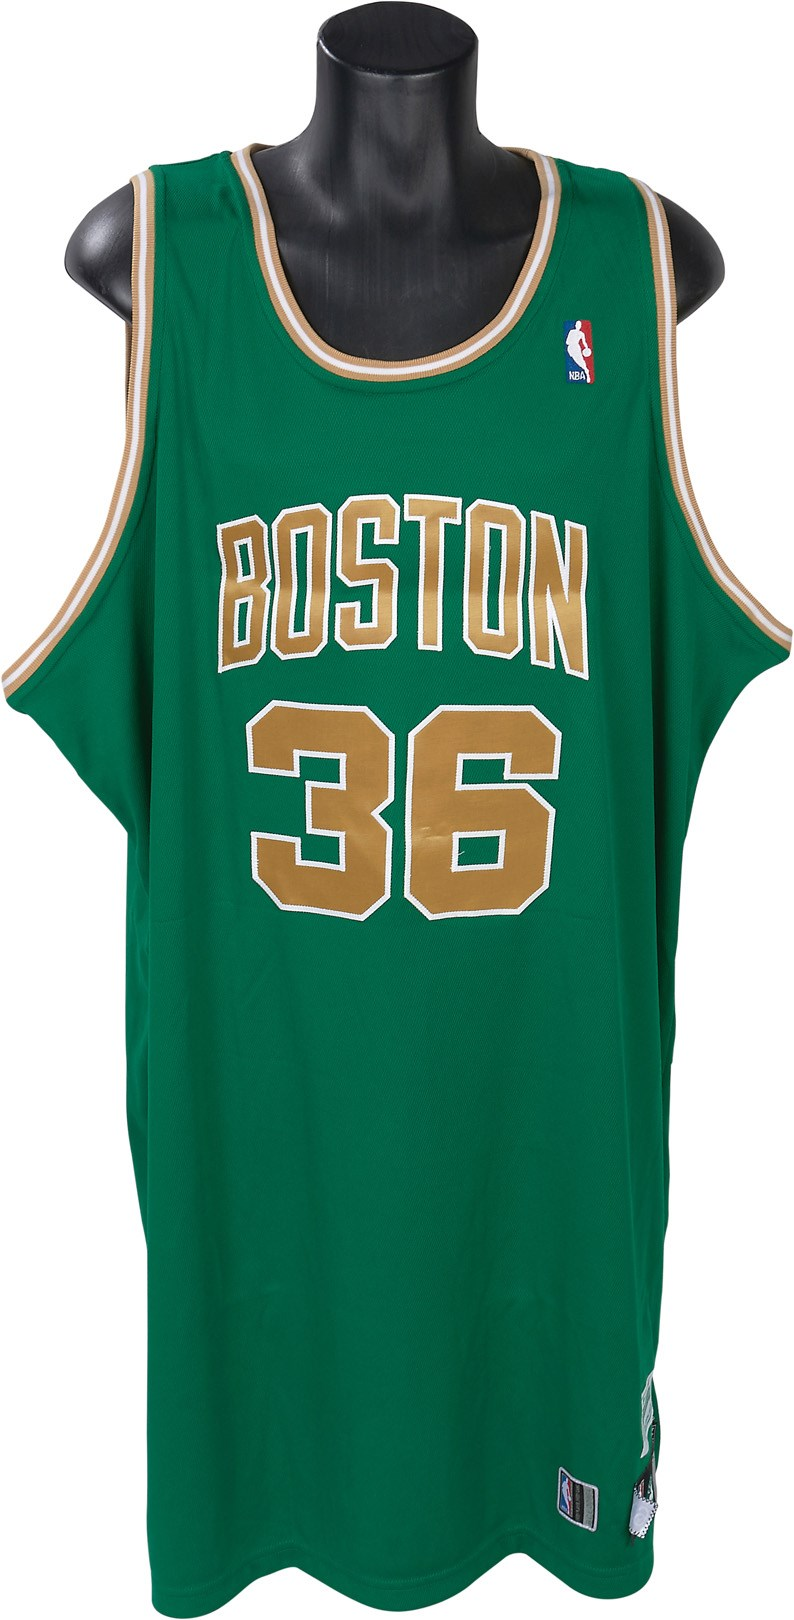 7a06fa512a6 2010-11 Shaquille O Neal St. Patrick s Day Boston Celtics Game Issued  Signed Jersey (LOA Shaq s personal chef)